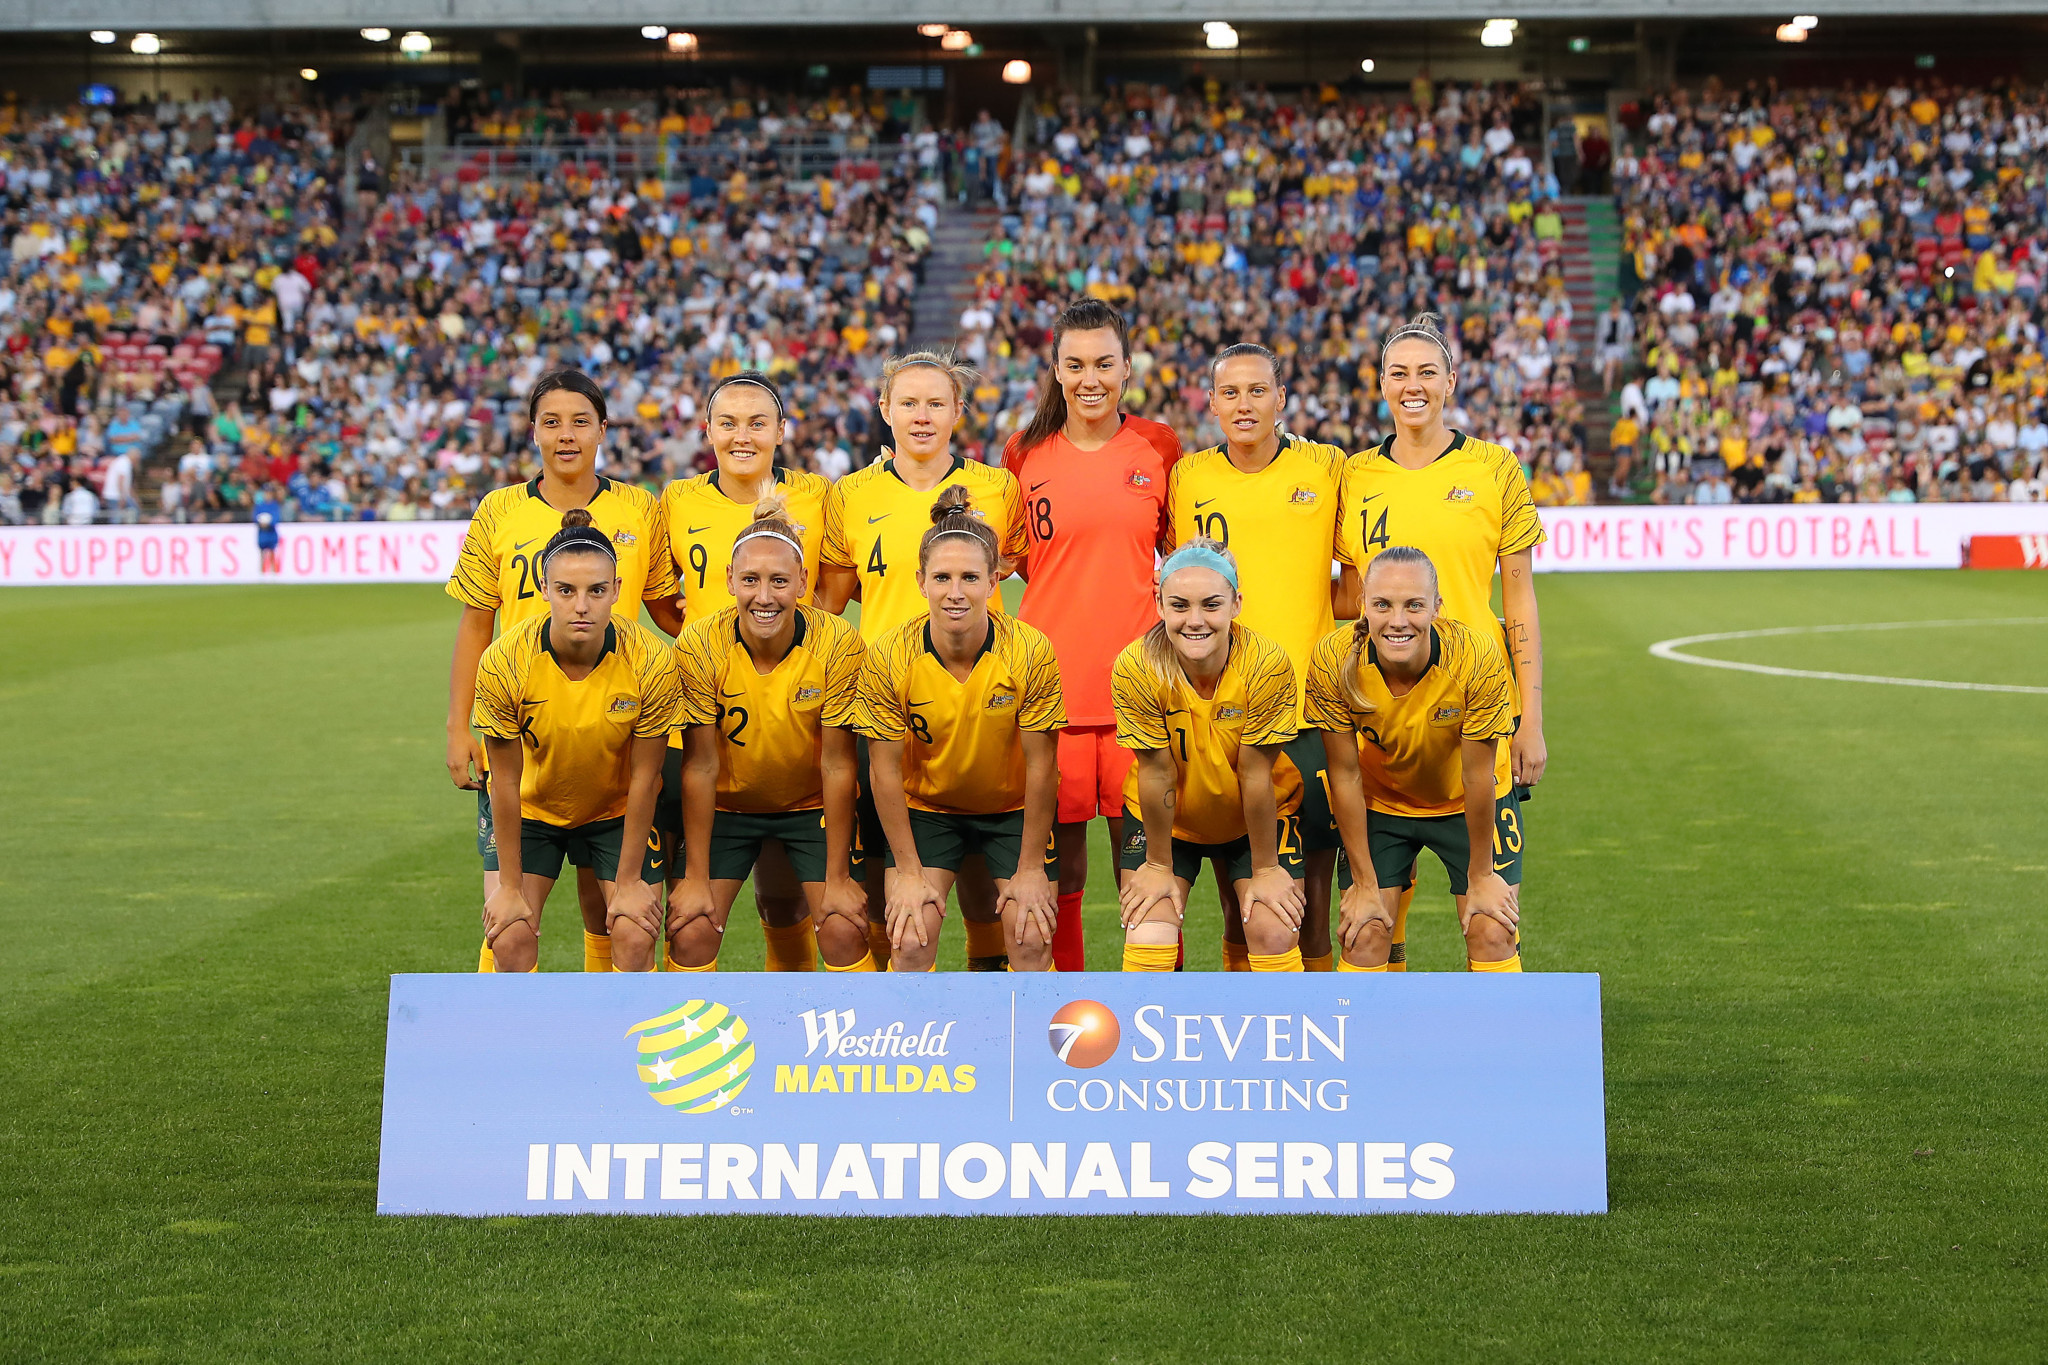 Australia are considered among the favourites to win this year's FIFA Women's World Cup in France ©Getty Images